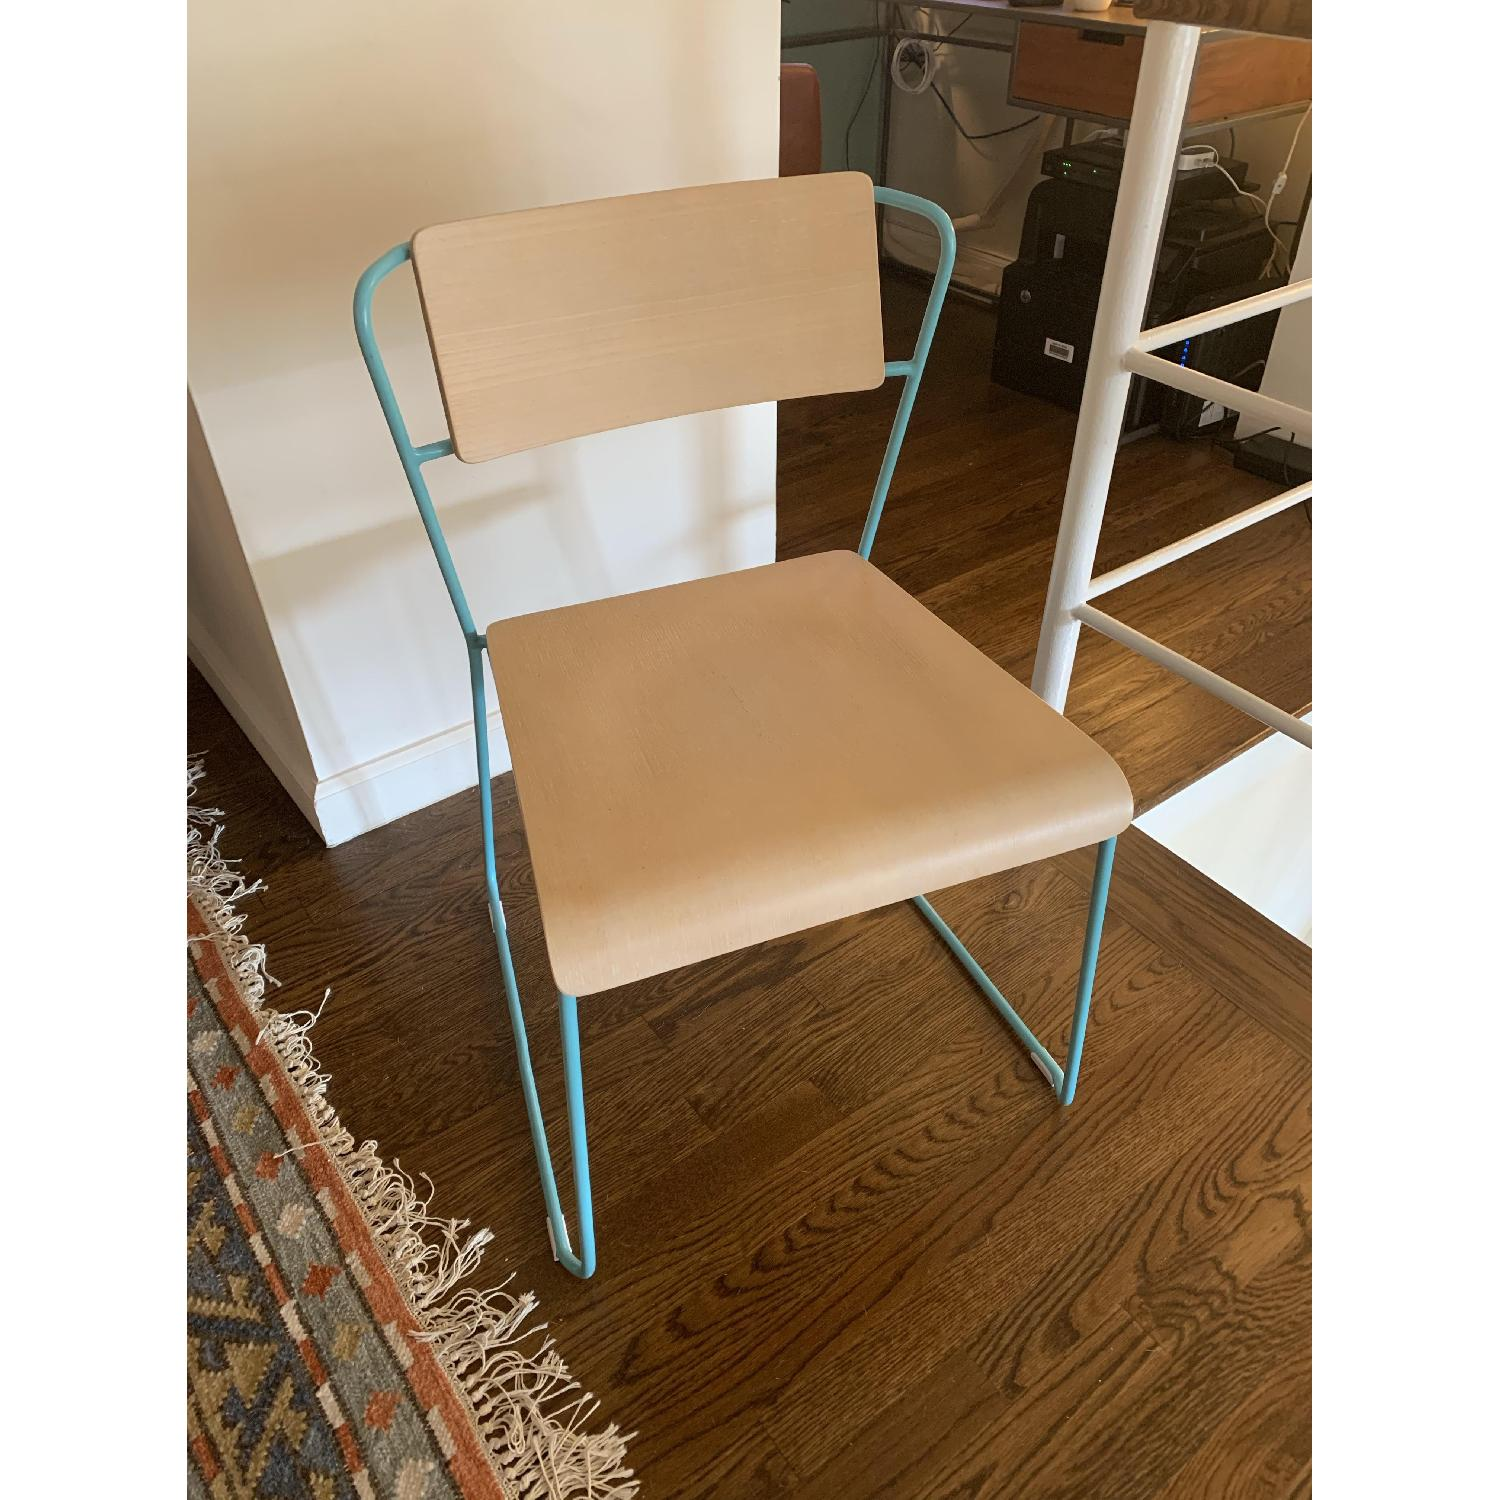 Industry West Transit Chairs in Peppermint - image-4